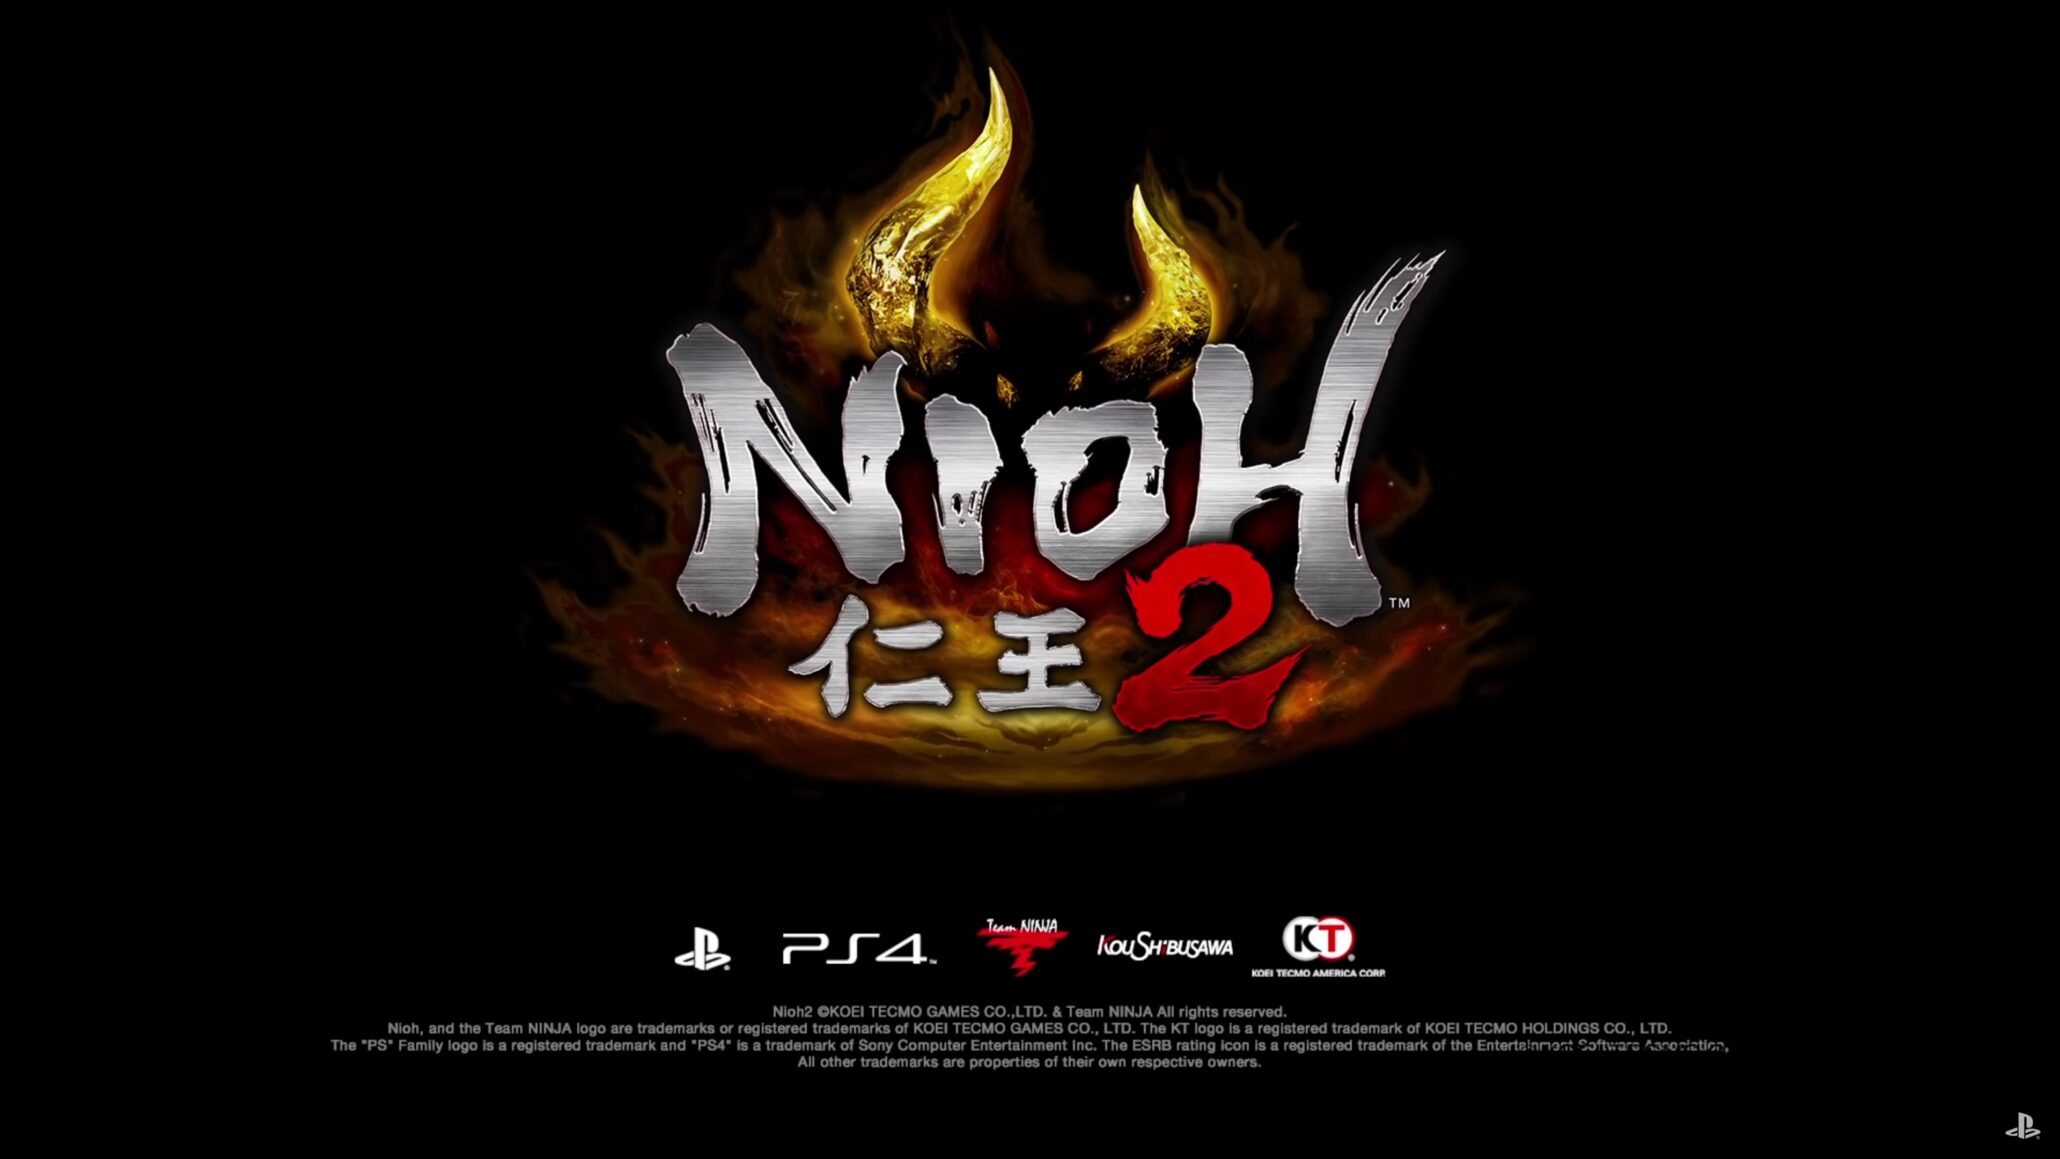 Nioh 2 Closed Alpha Coming Soon, Developer Shares New